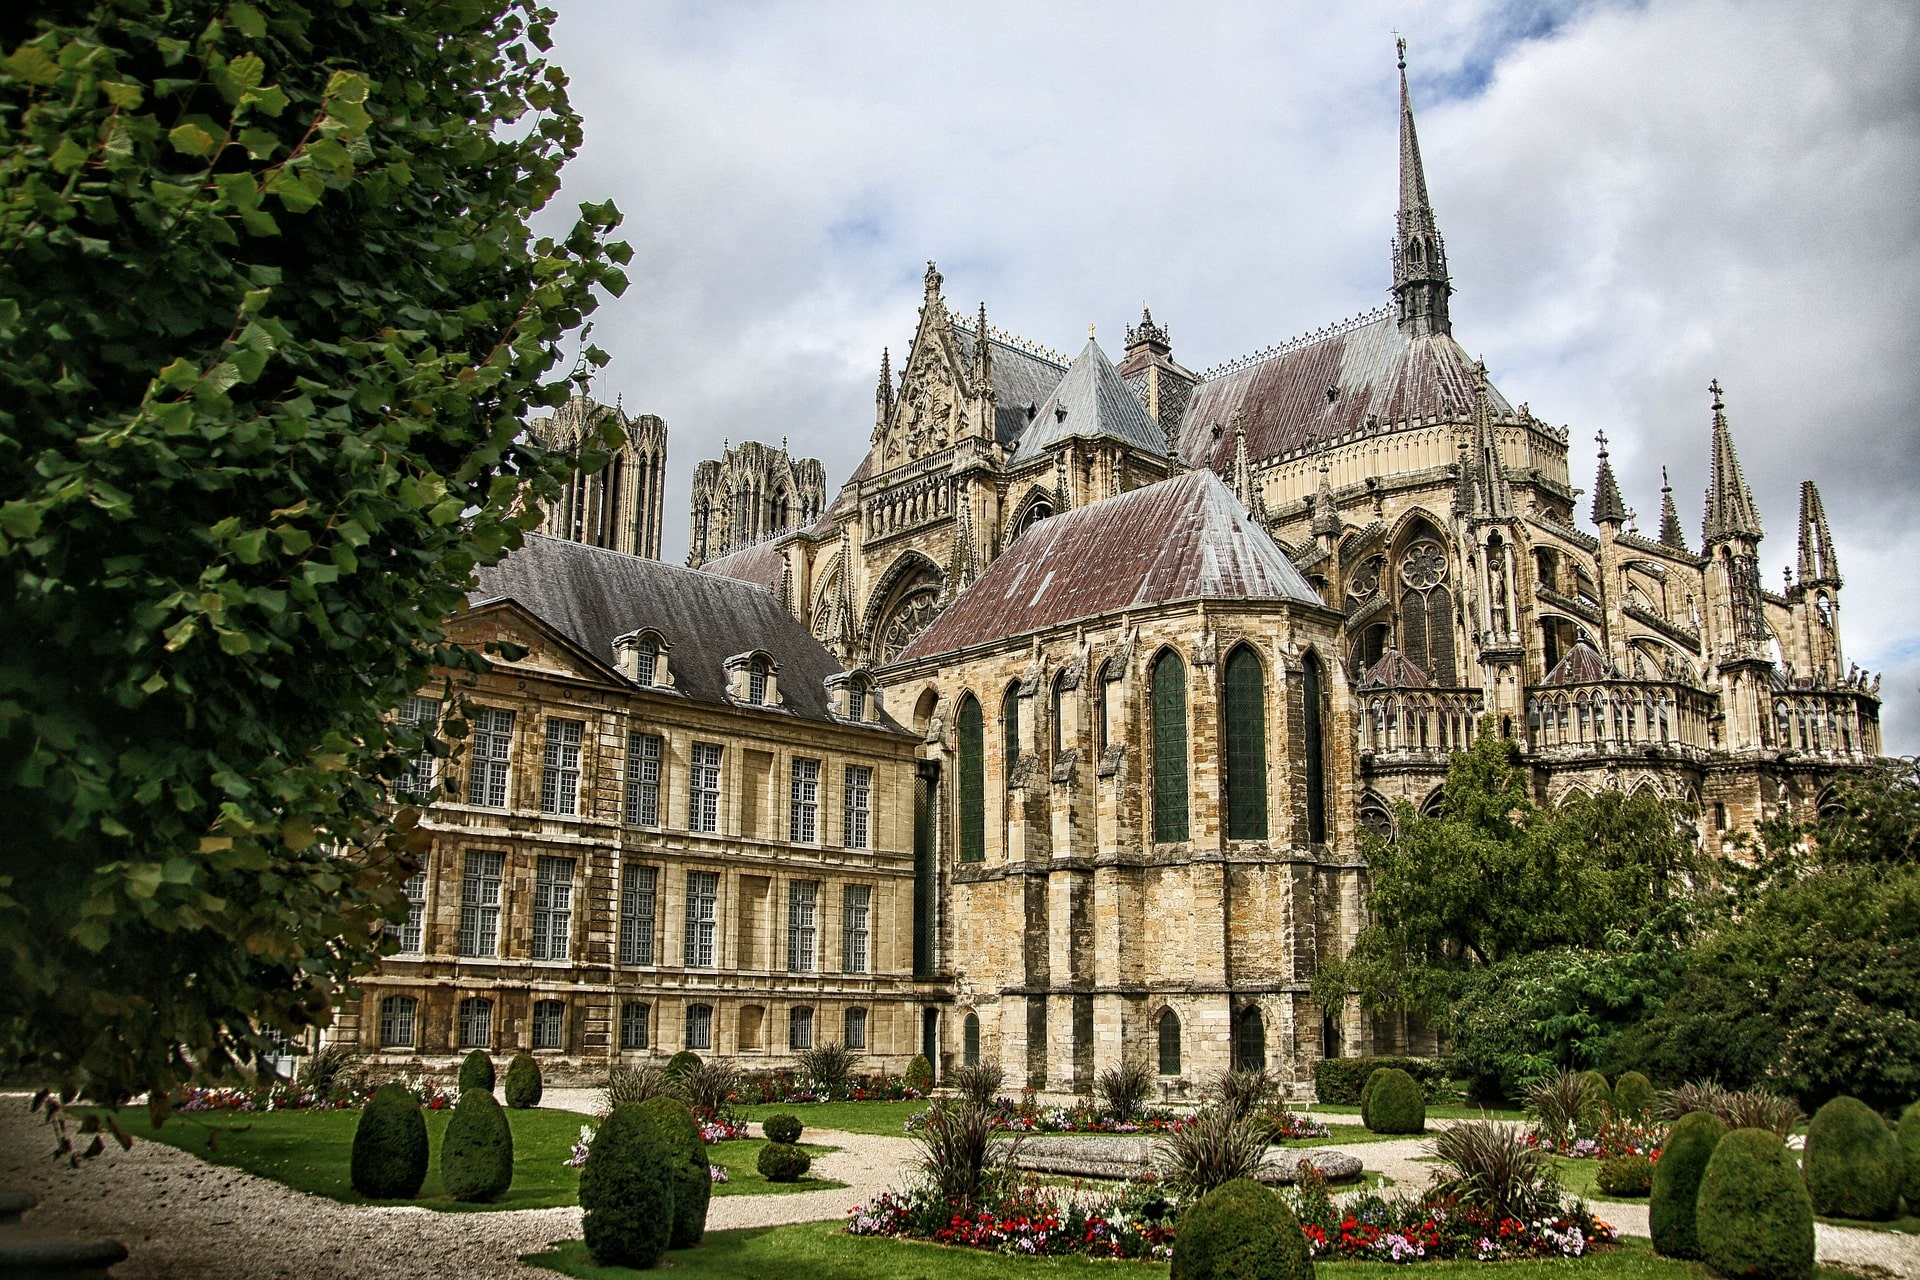 Reims is one of the most gorgeous places to visit in France